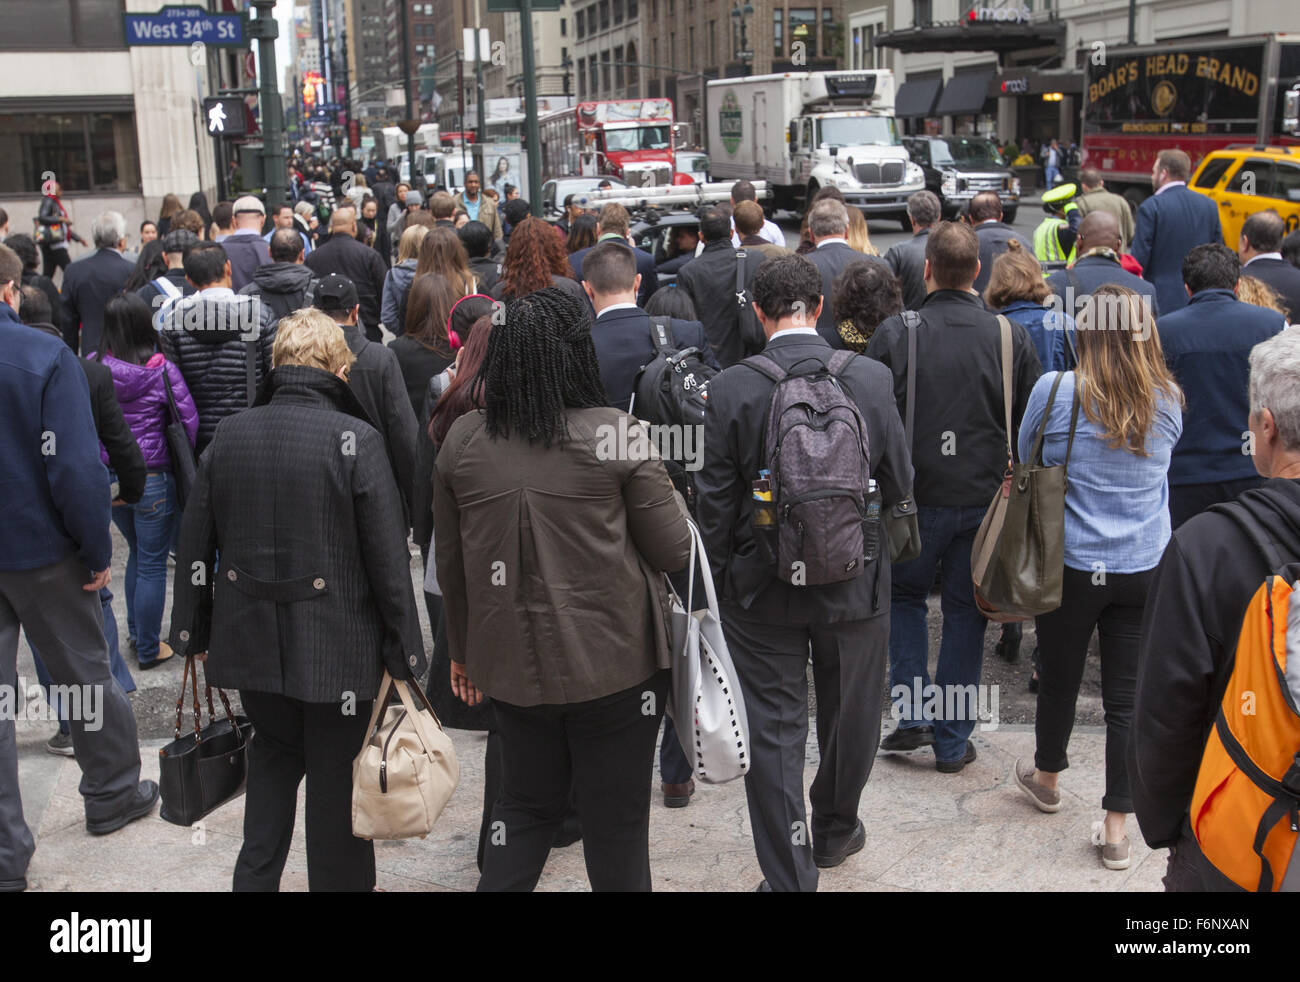 Morning rush hour crowds of office building workers cross 34th Street and 7th Avenue in Manhattan. - Stock Image